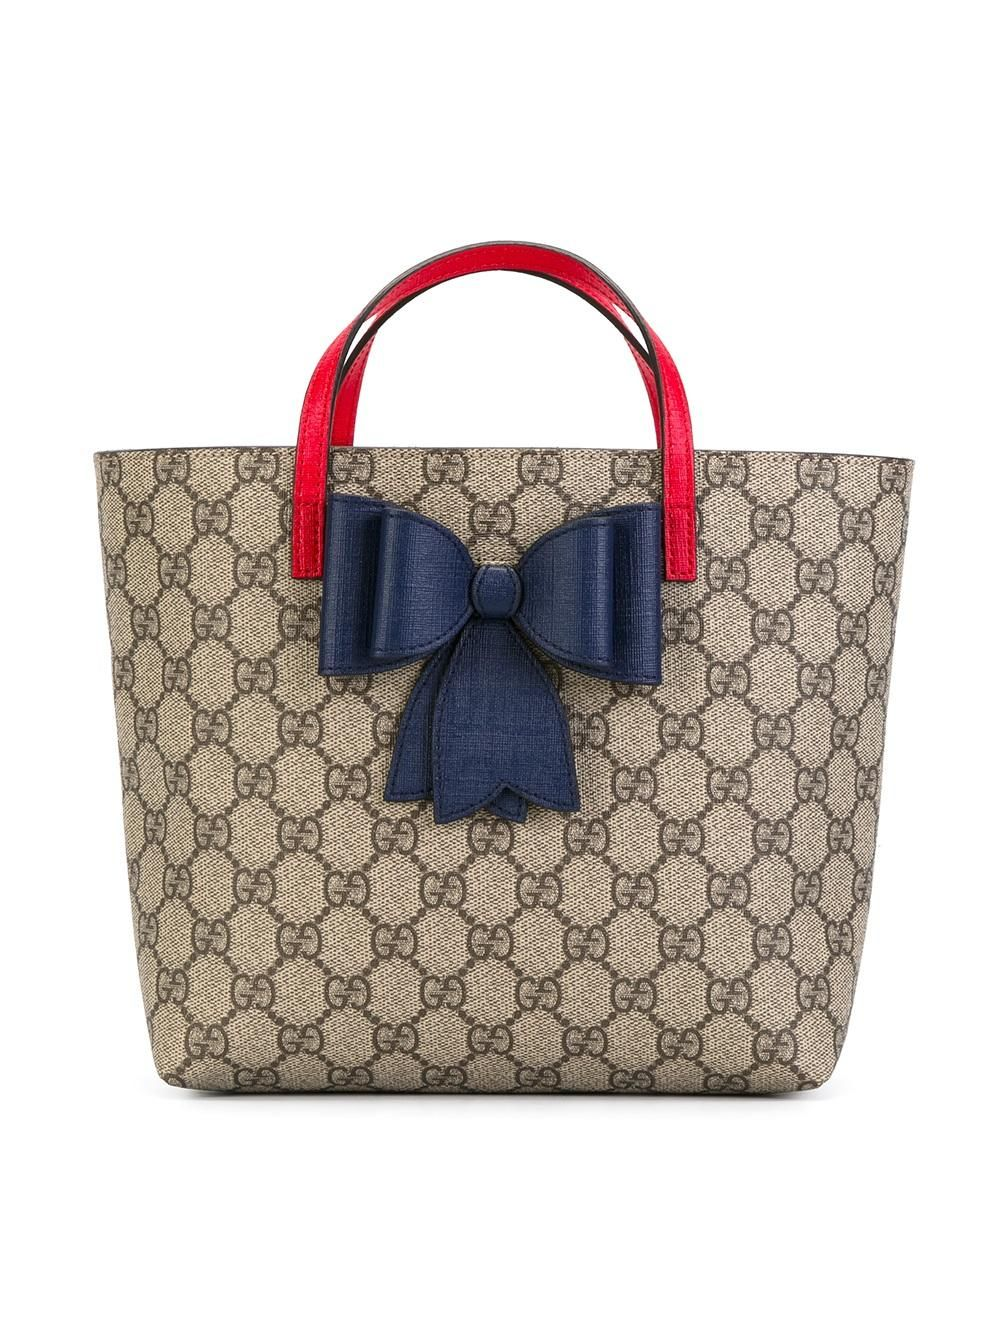 8d6ca2648 #gucci #kids #gg #tote #bag #bow #blue #red #detail #style www.jofre.eu